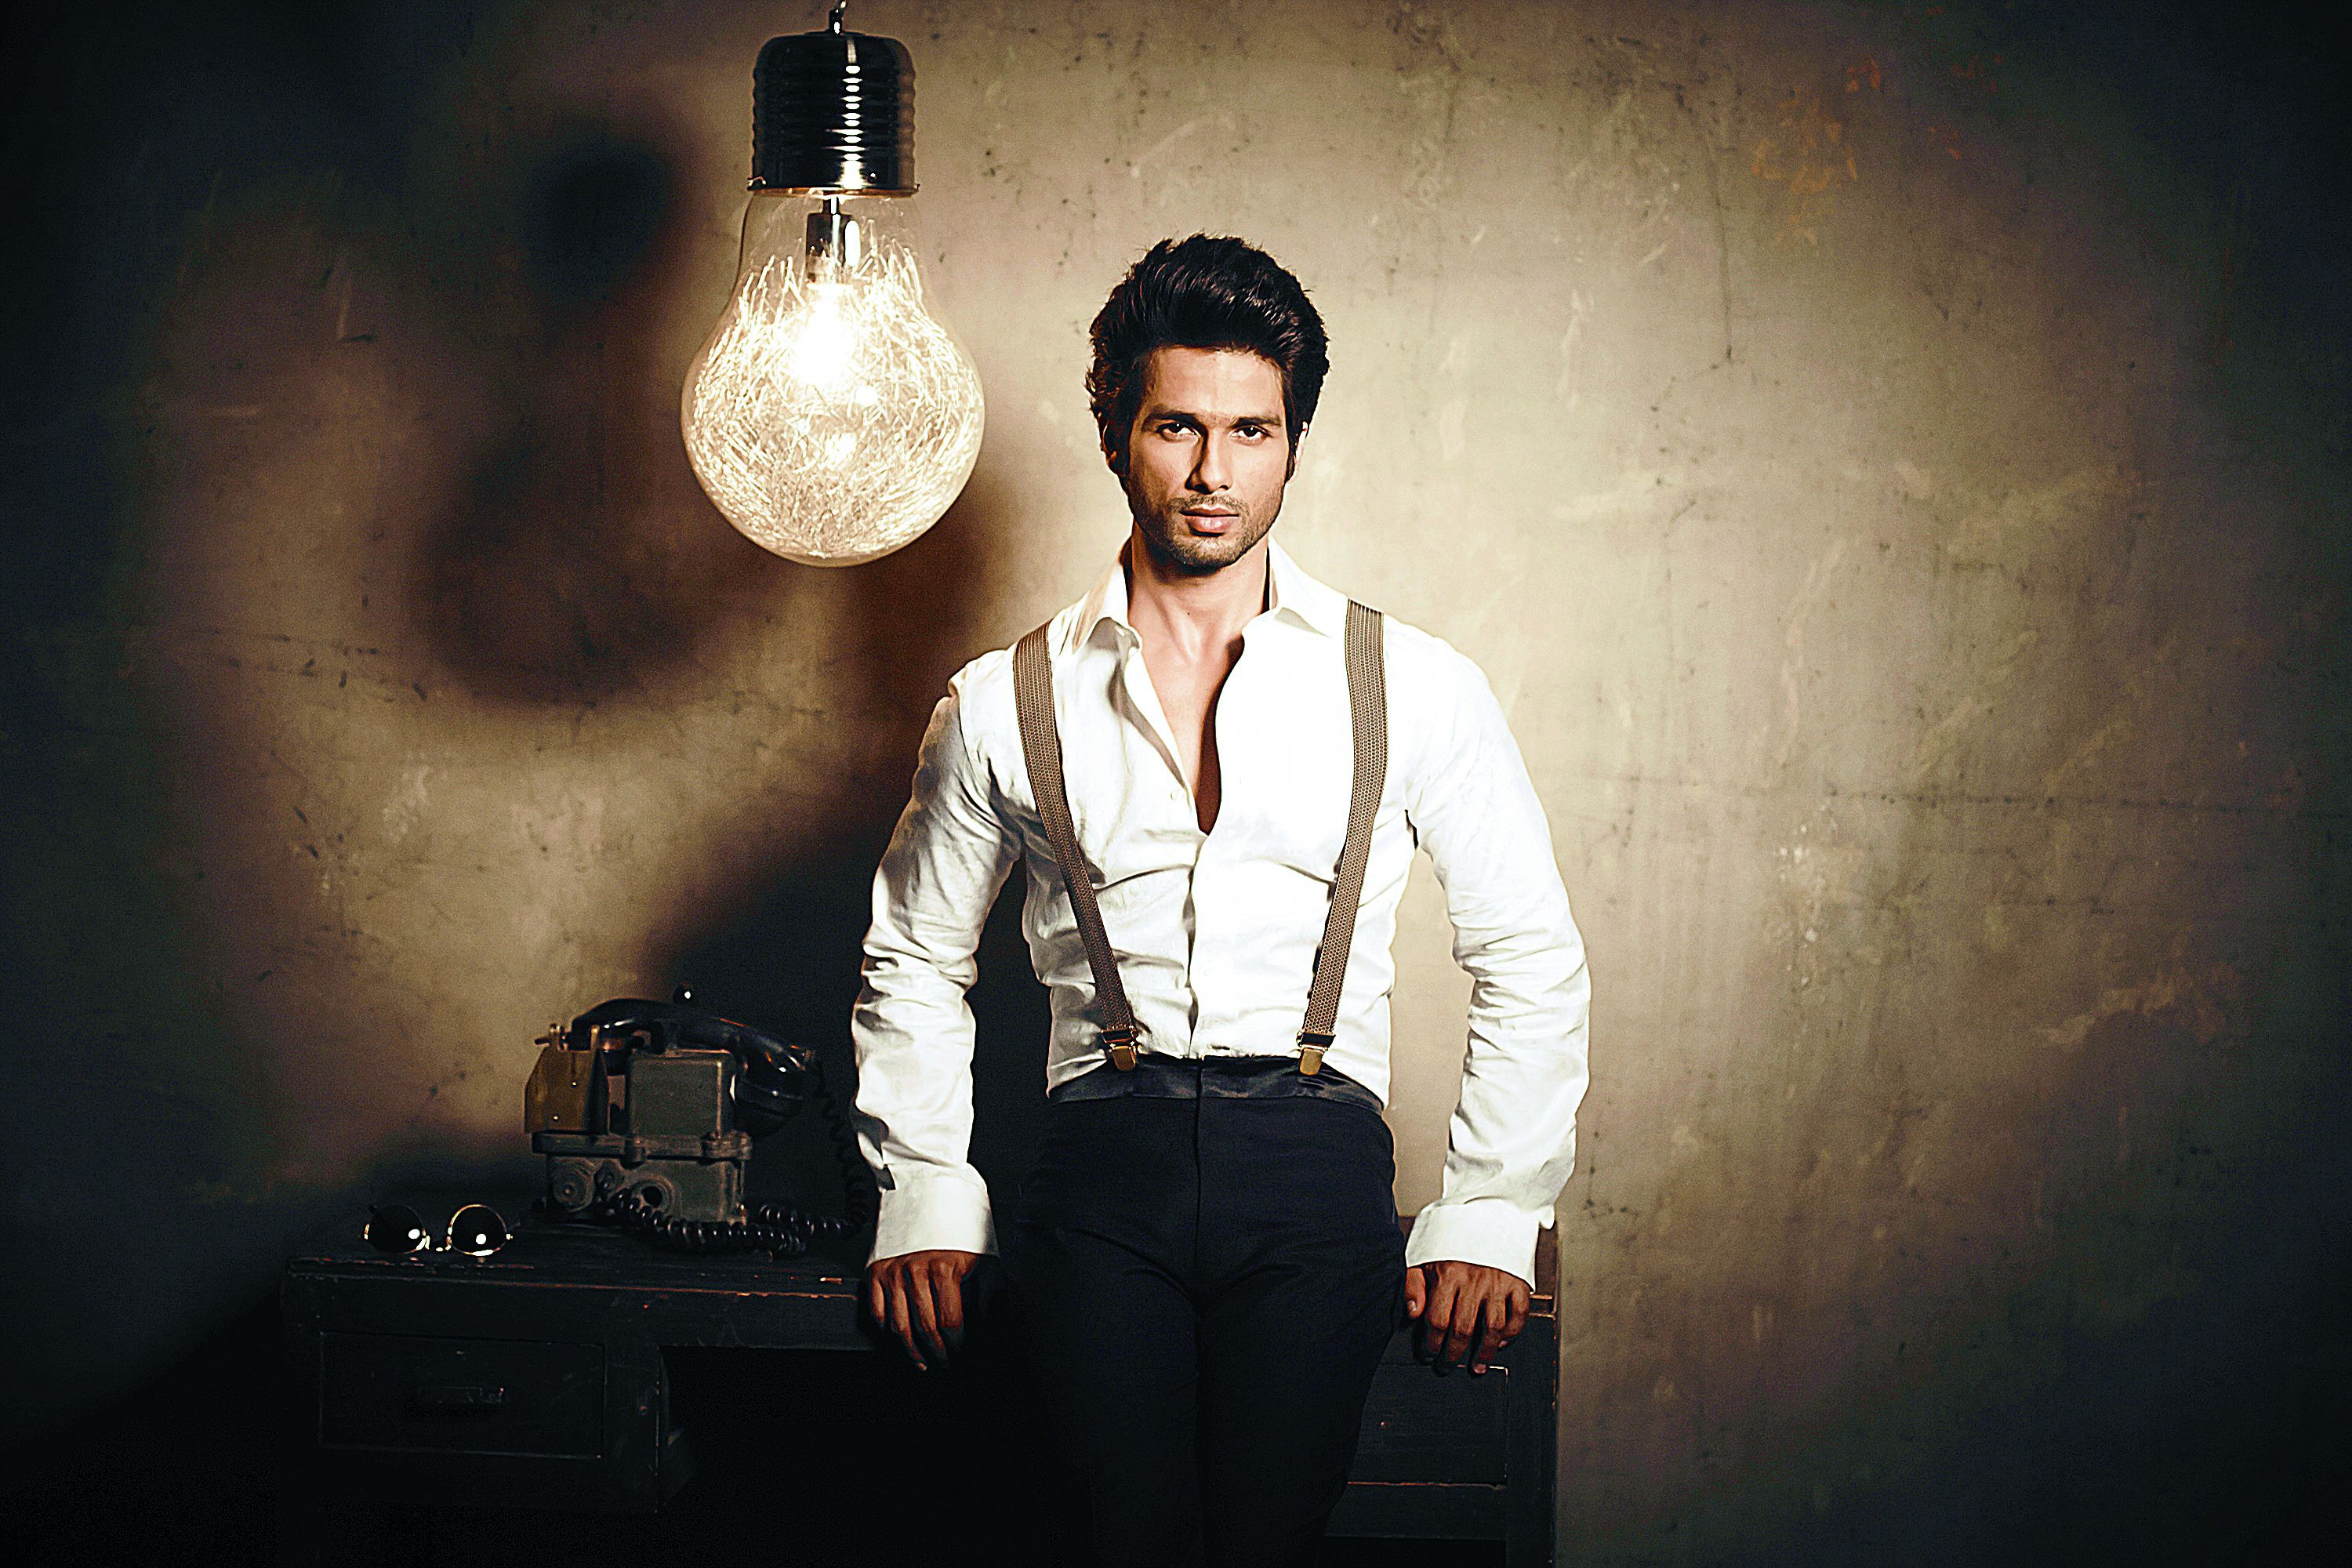 Images of Shahid Kapoor